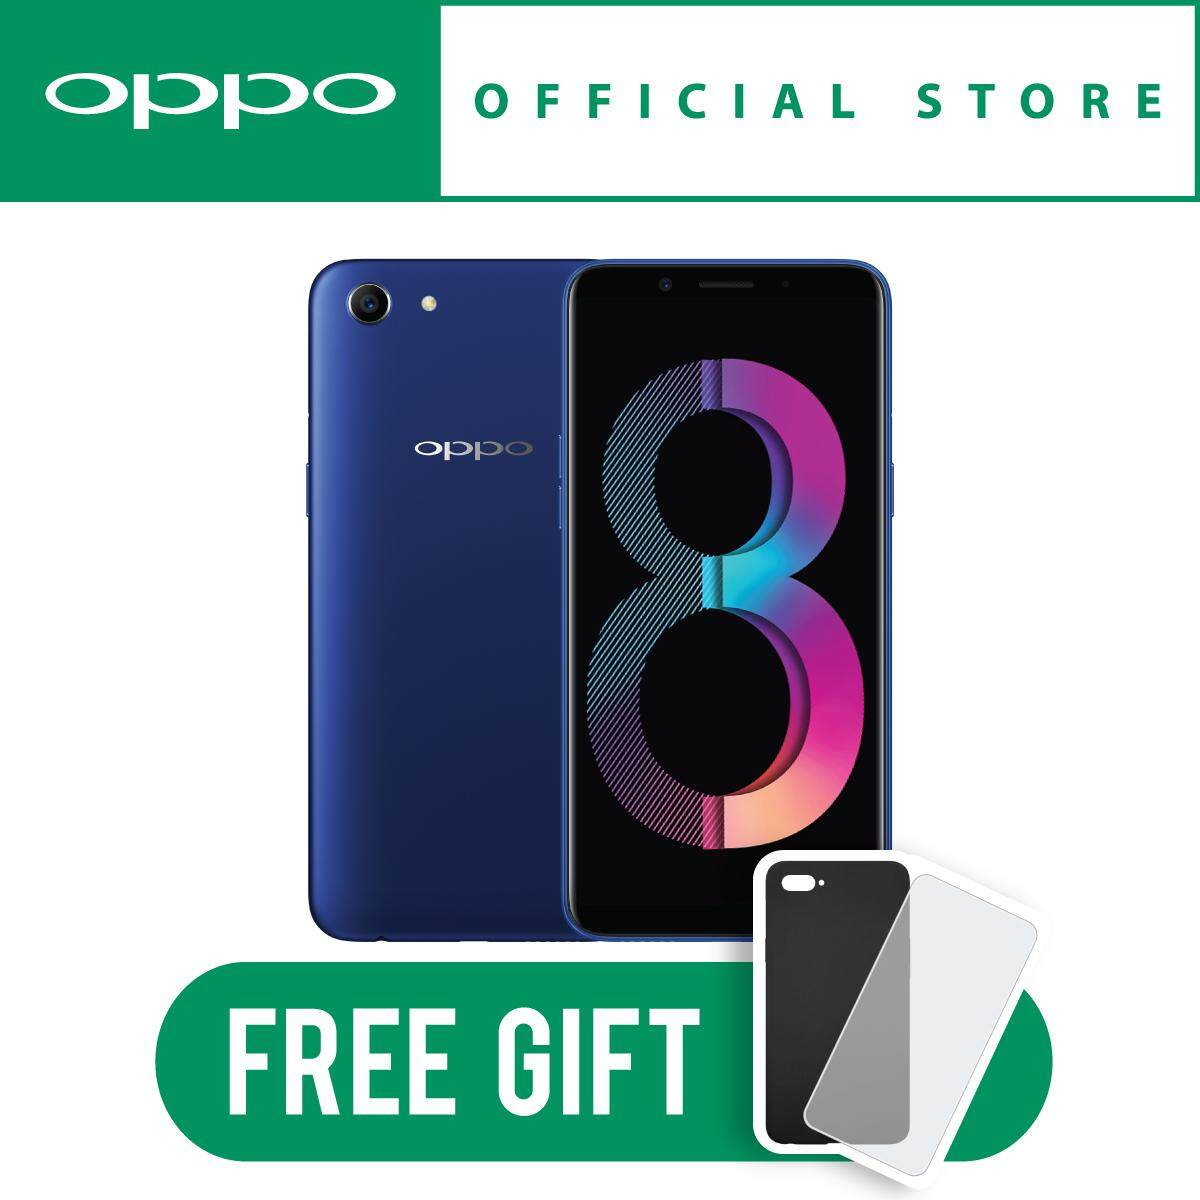 OPPO Official Store - Buy OPPO Official Store at Best Price in